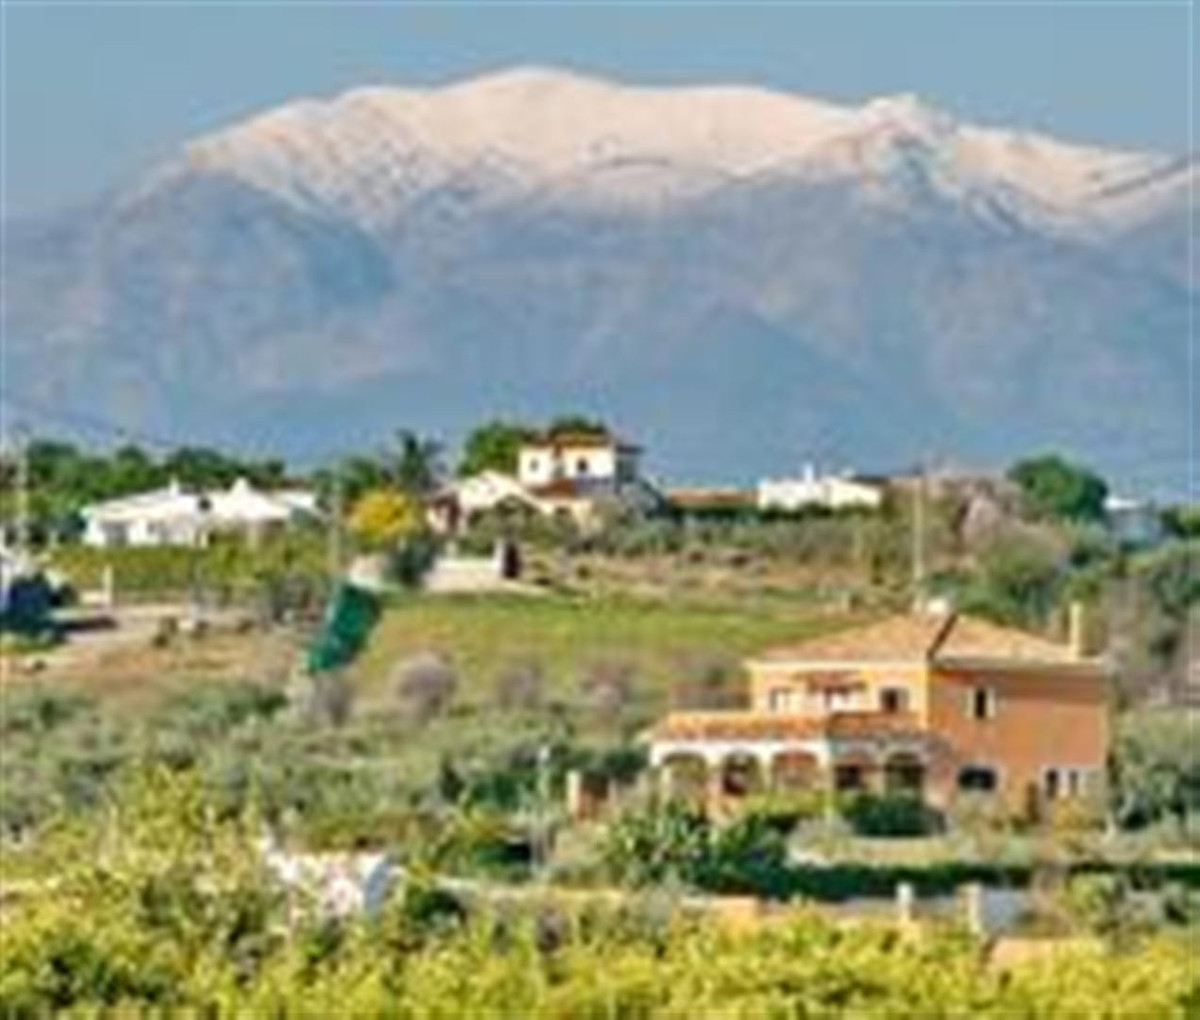 The property is situated in the Municipality of Alhaurin el Grande, at a point equidistant between M, Spain